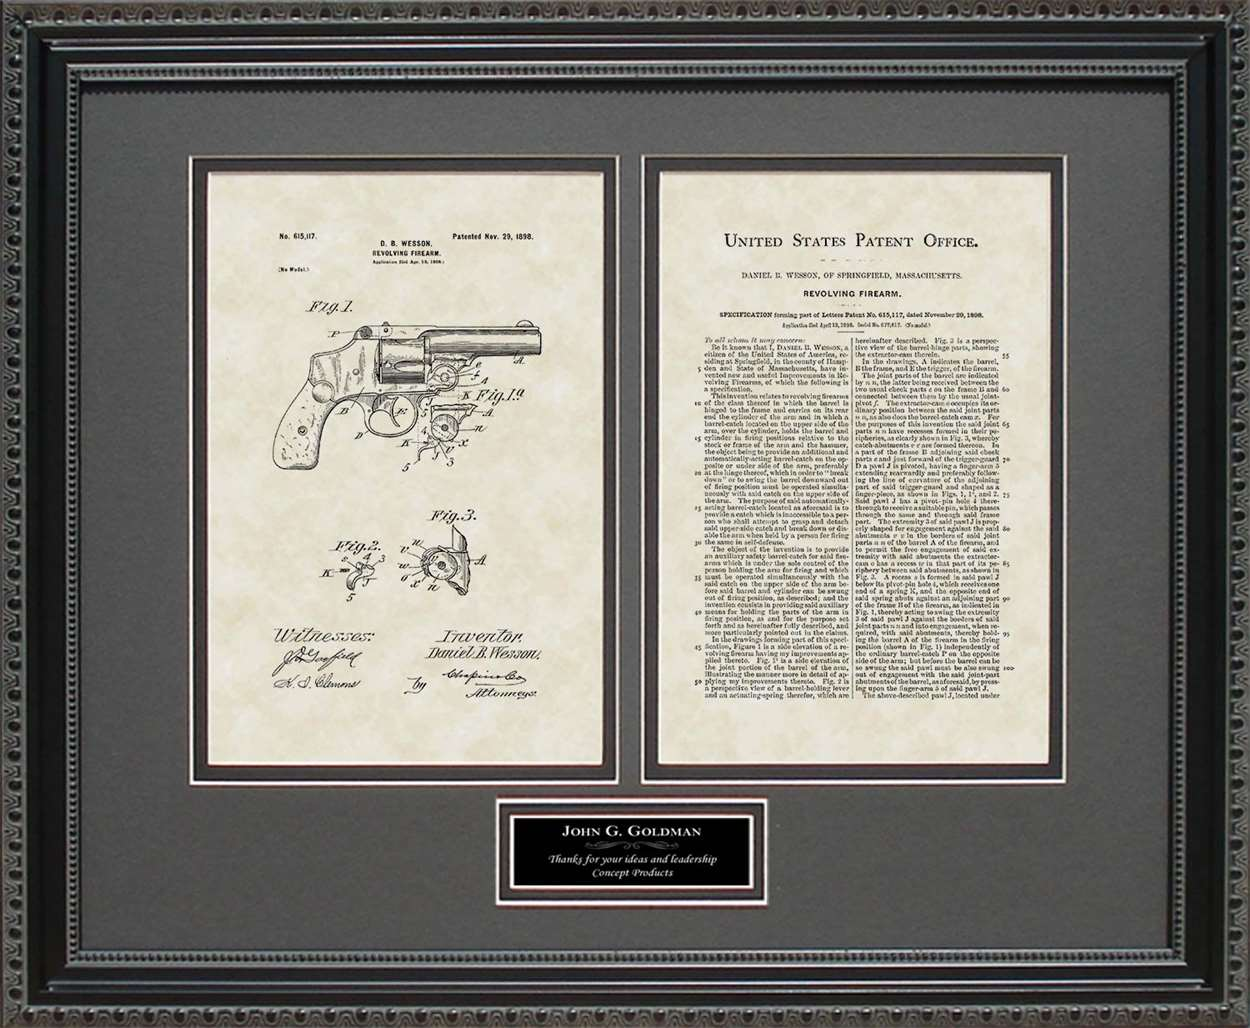 Personalized Revolver Patent, Art & Copy, Wesson, 1898